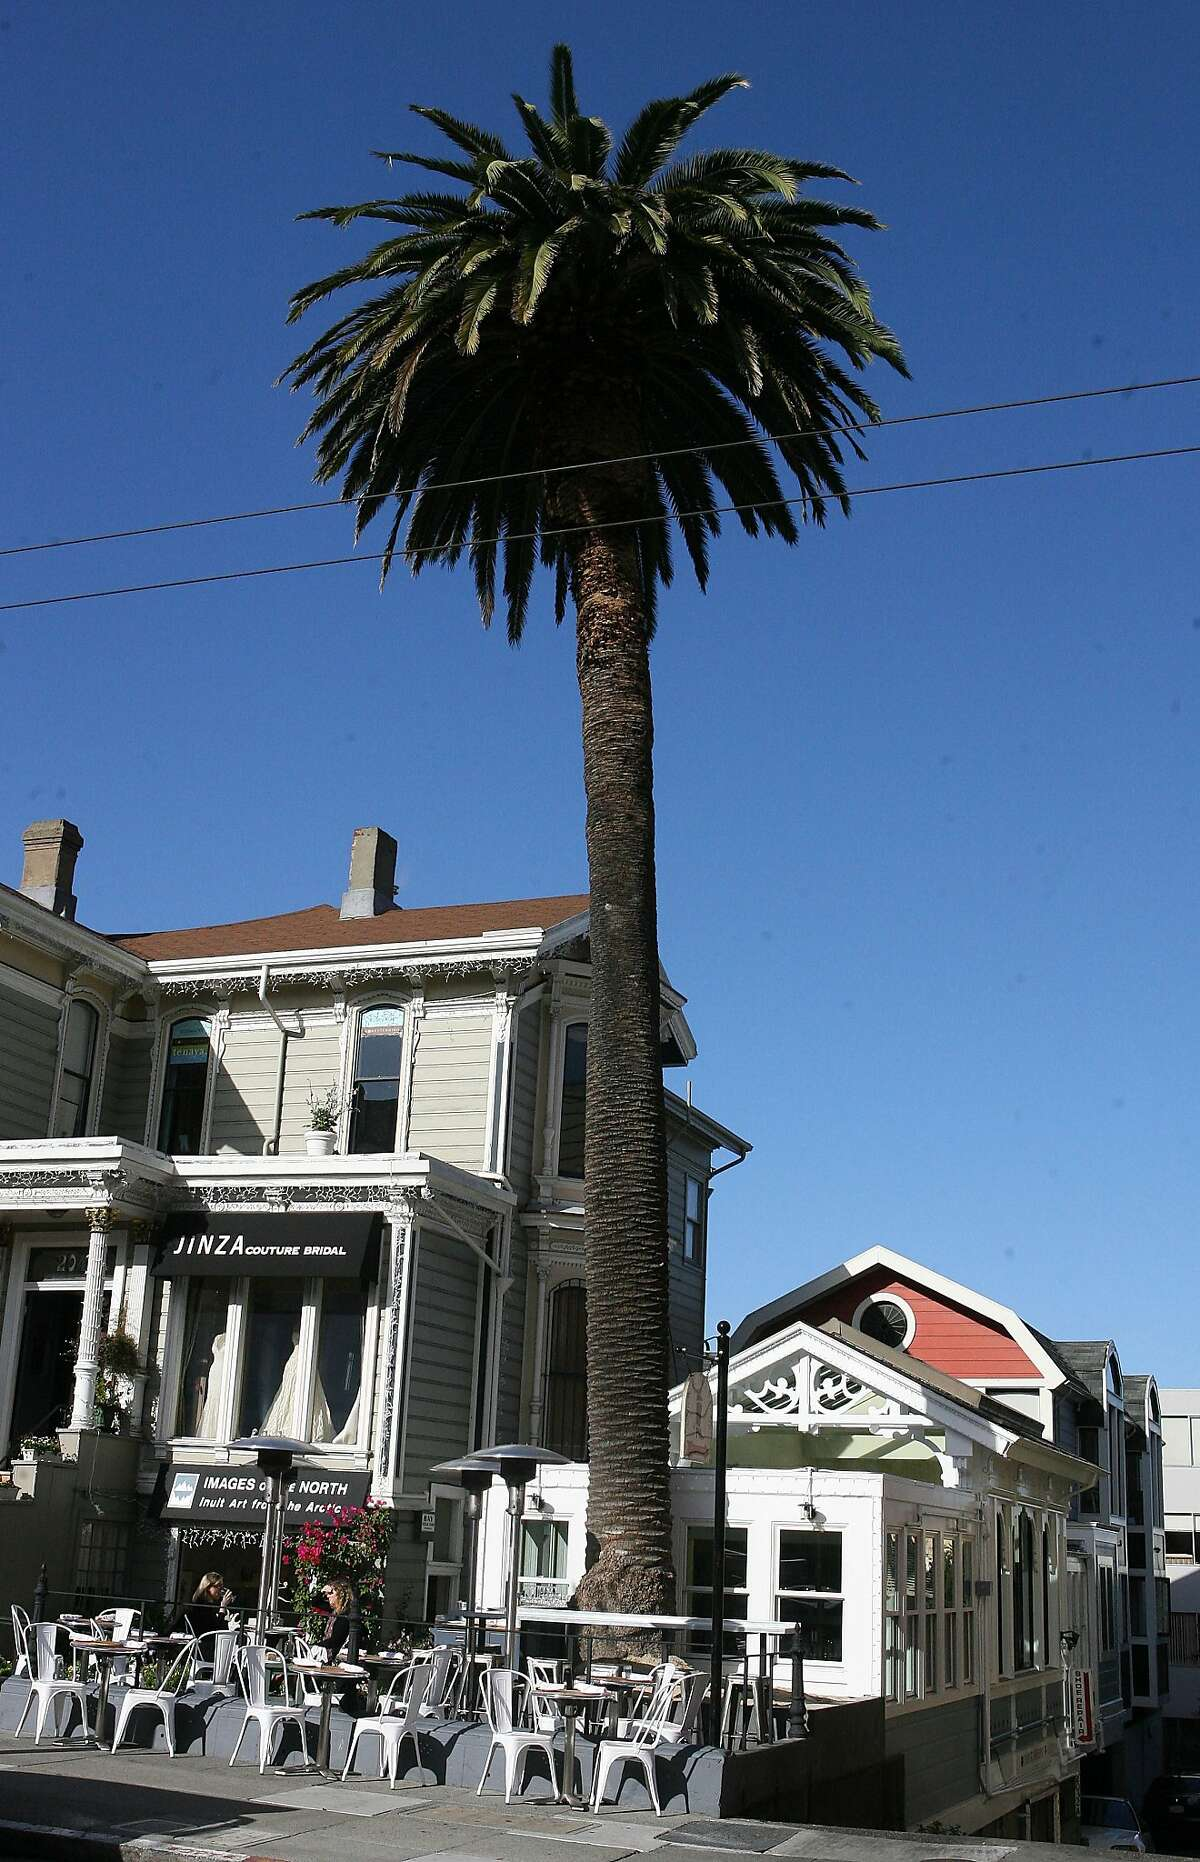 What's billed as the second oldest palm tree in the Bay Area is the namesake for the Palm House, a new Caribbean-themed restaurant going into the former Nettie's Crab Shack space on San Francisco's Union Street.